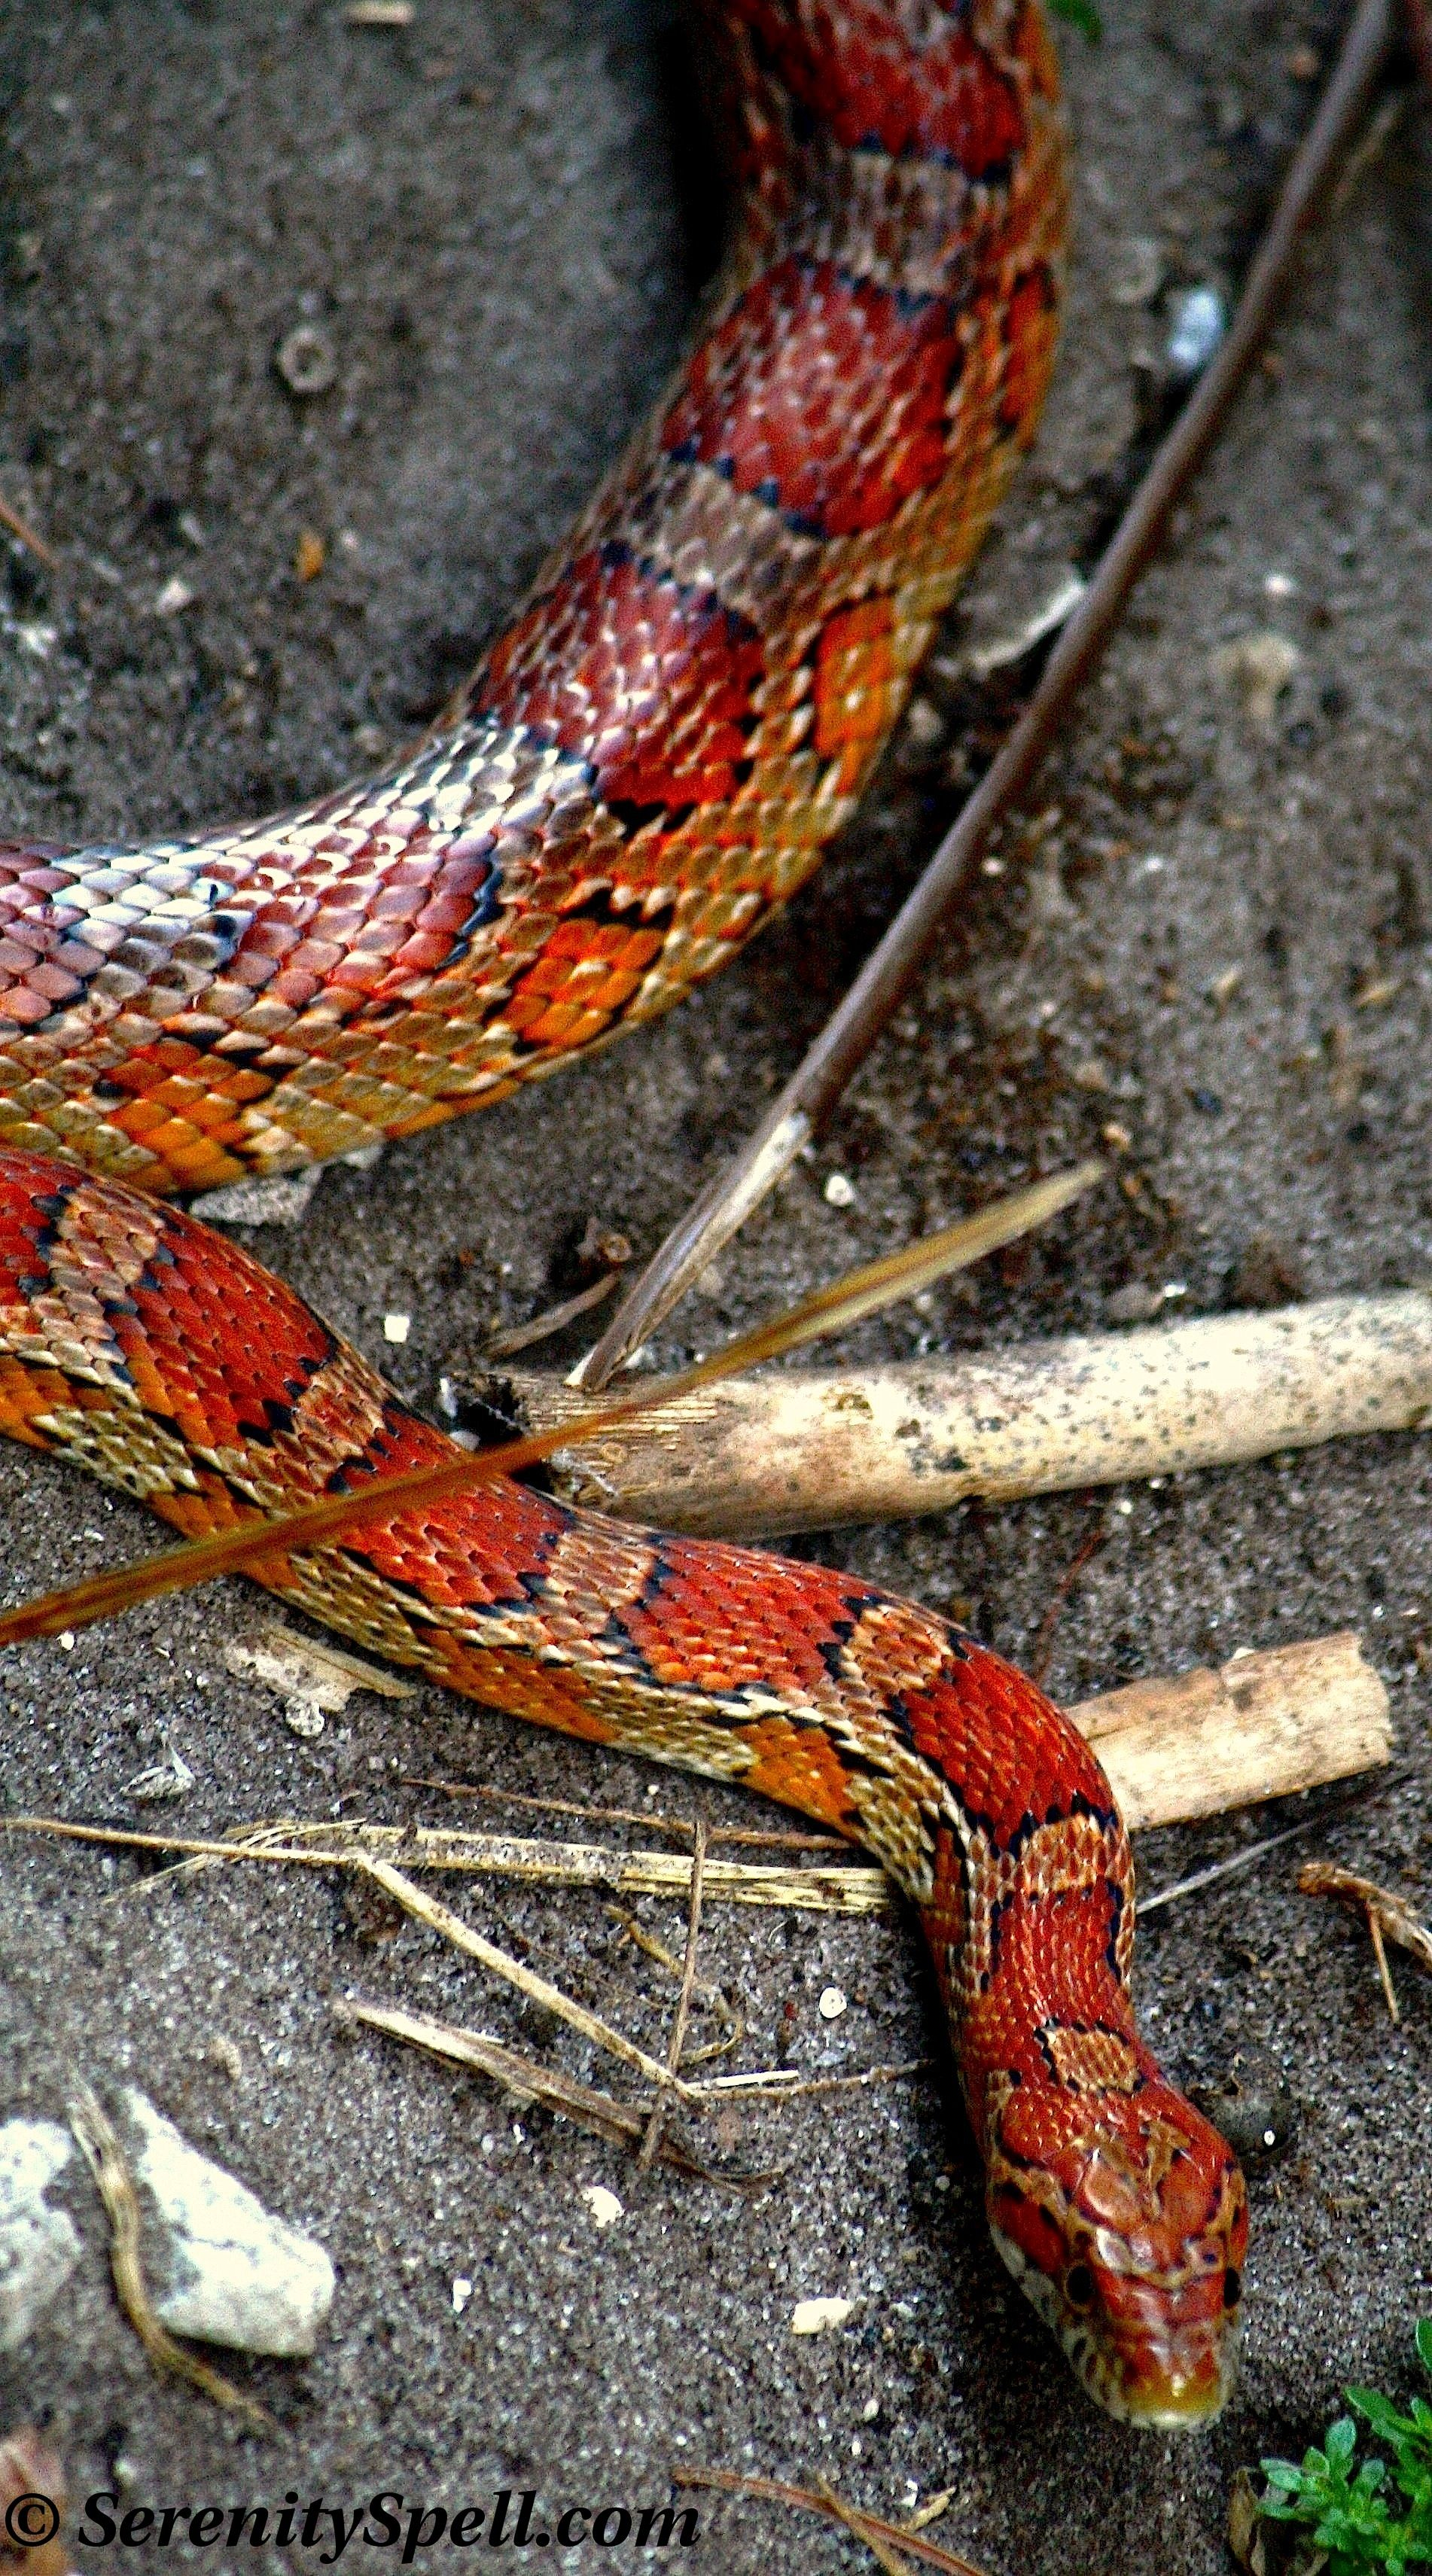 Corn Snake Or Red Rat Snake Florida Wetlands This Was The First Kind Of Snake I Owned Corn Snake Pet Snake Reptile Snakes